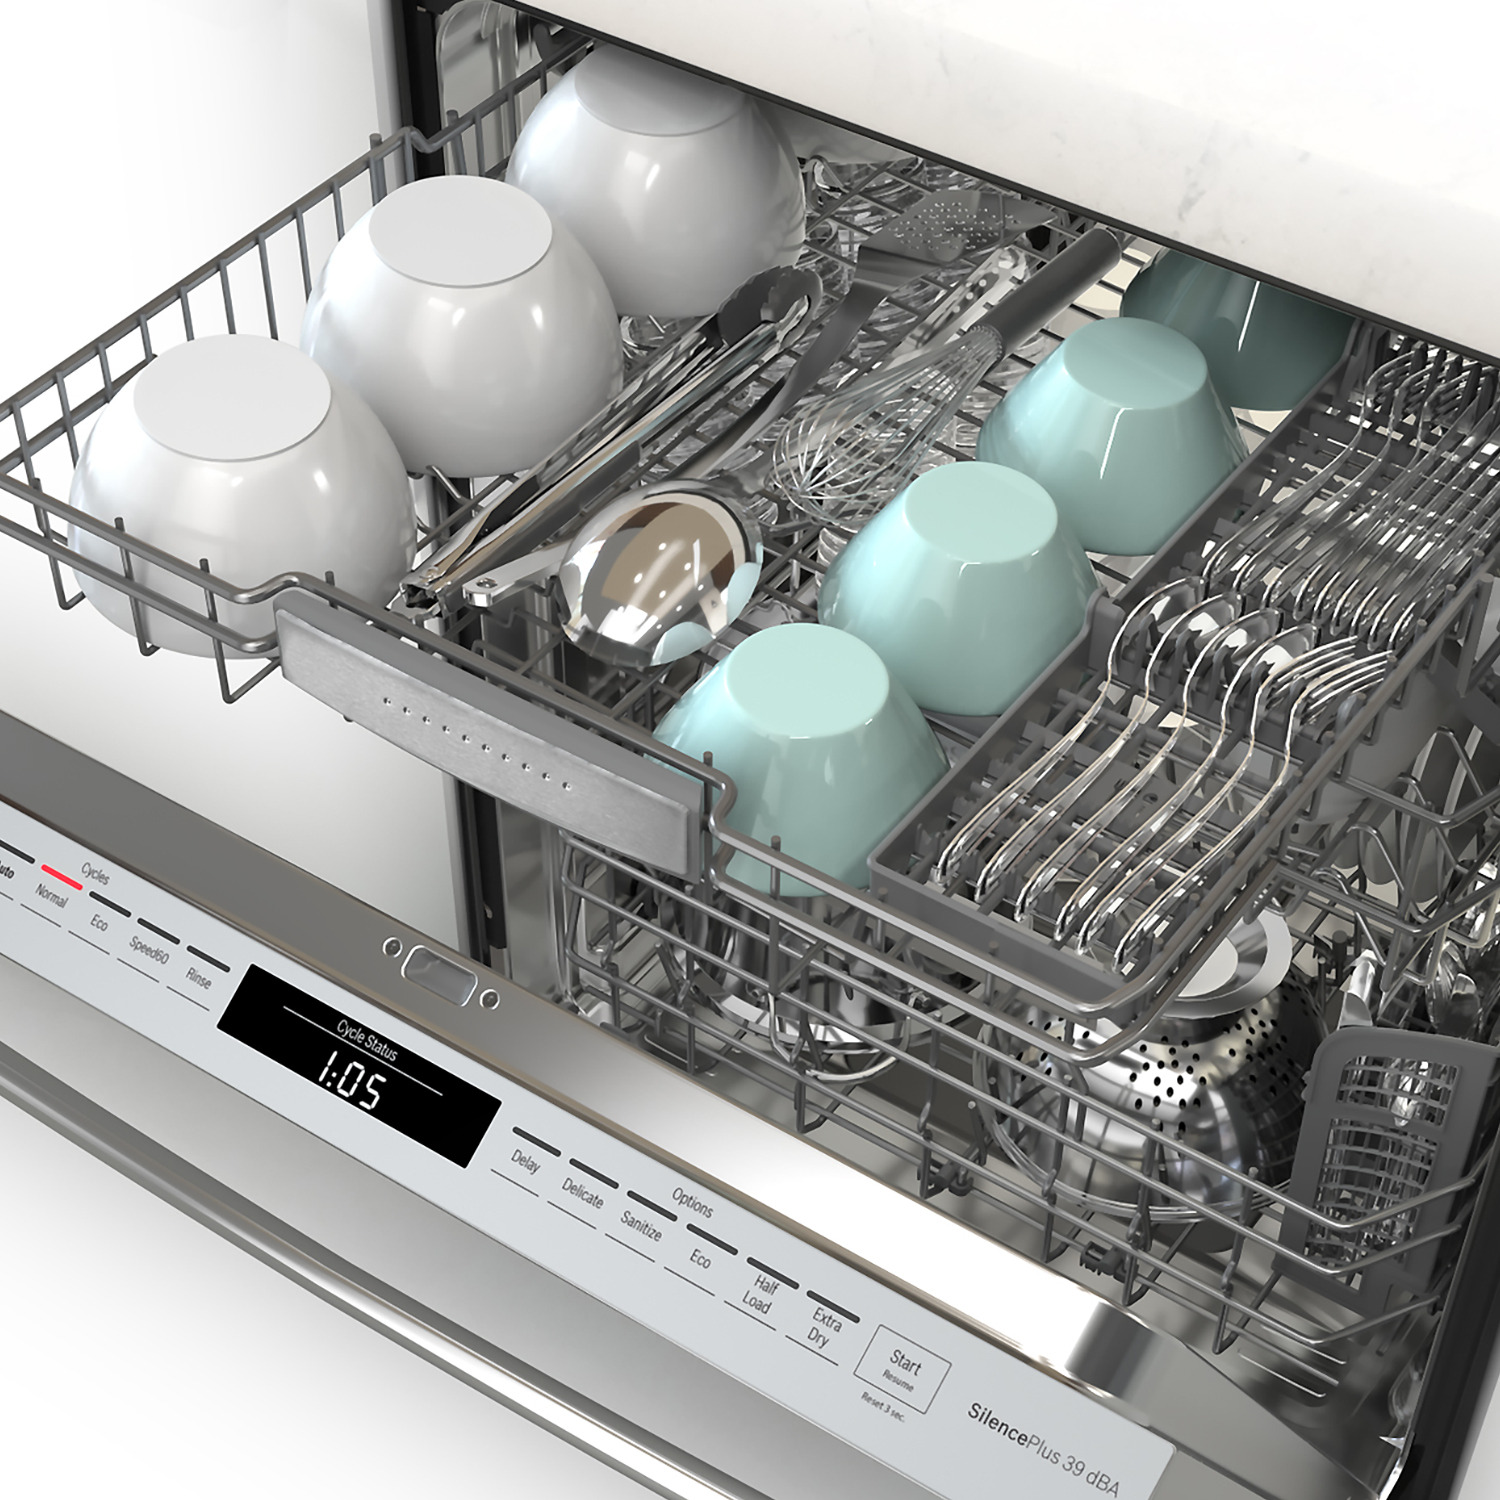 BOSCH Premium dishwasher